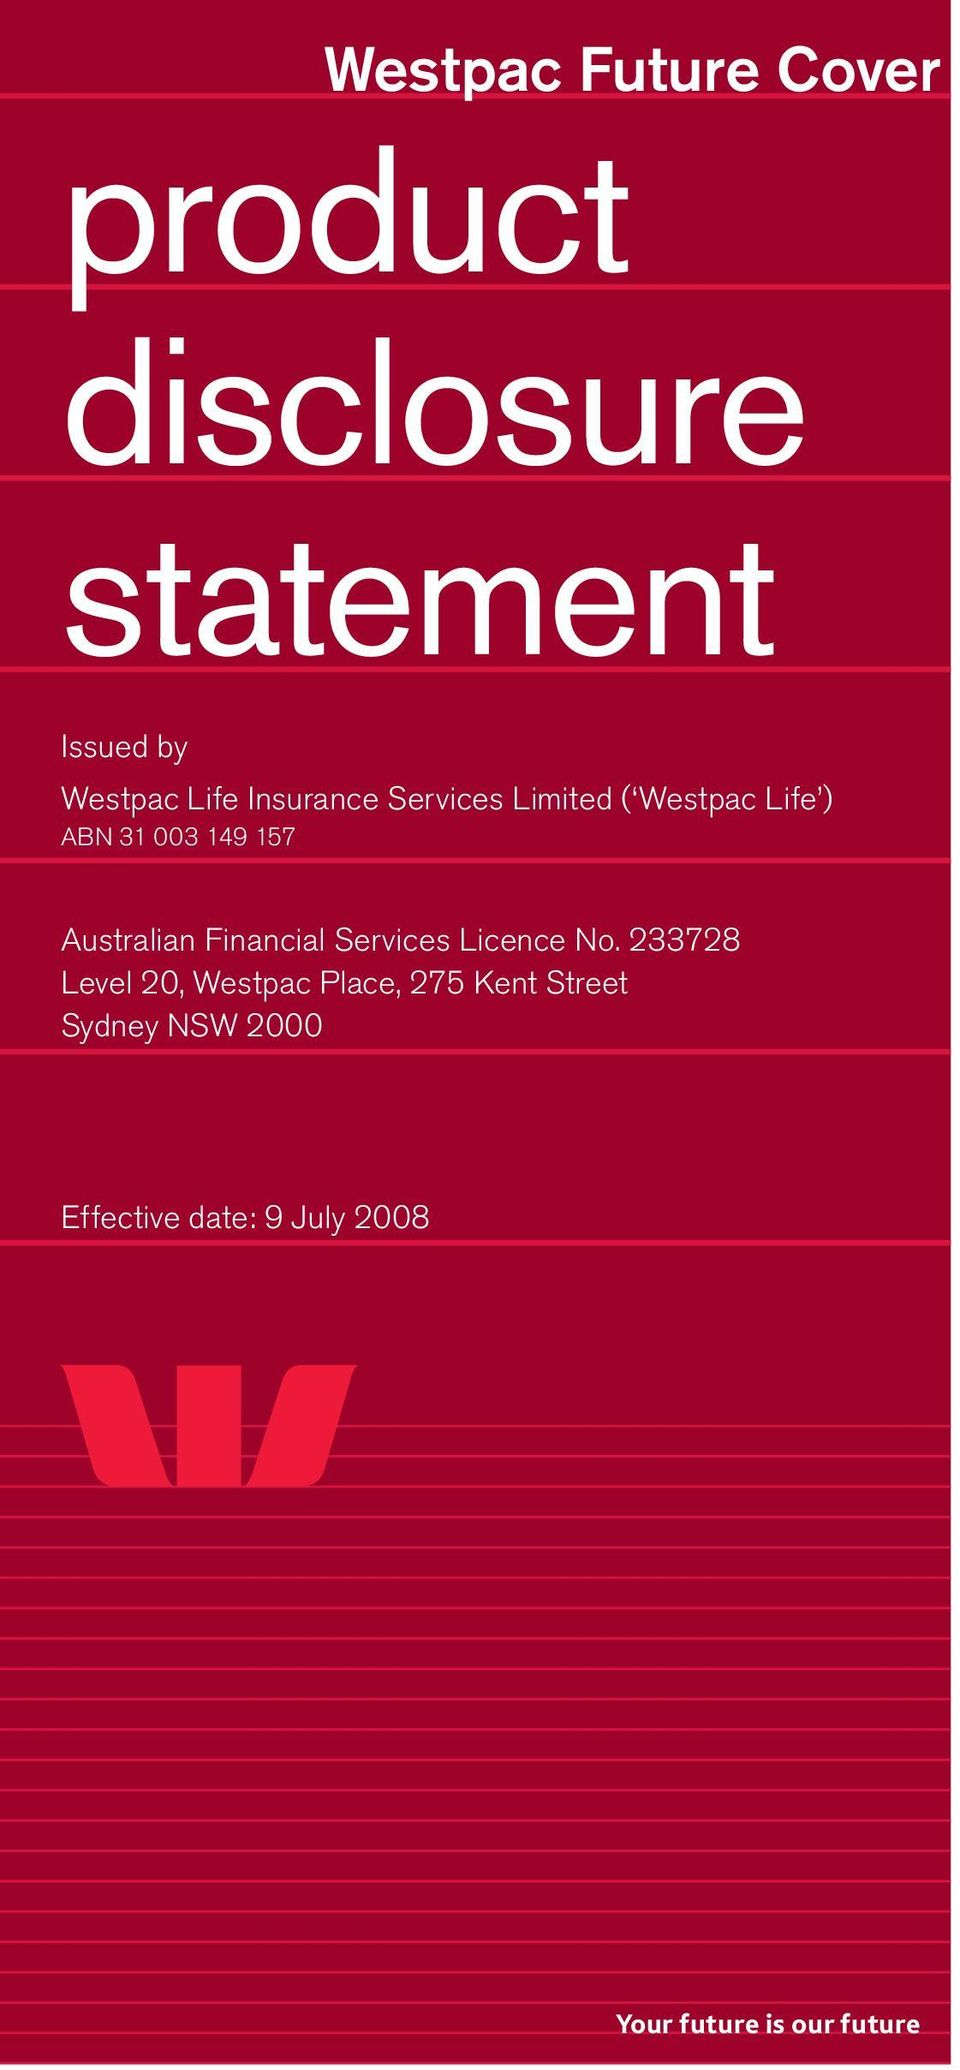 Financial Services Licence No.